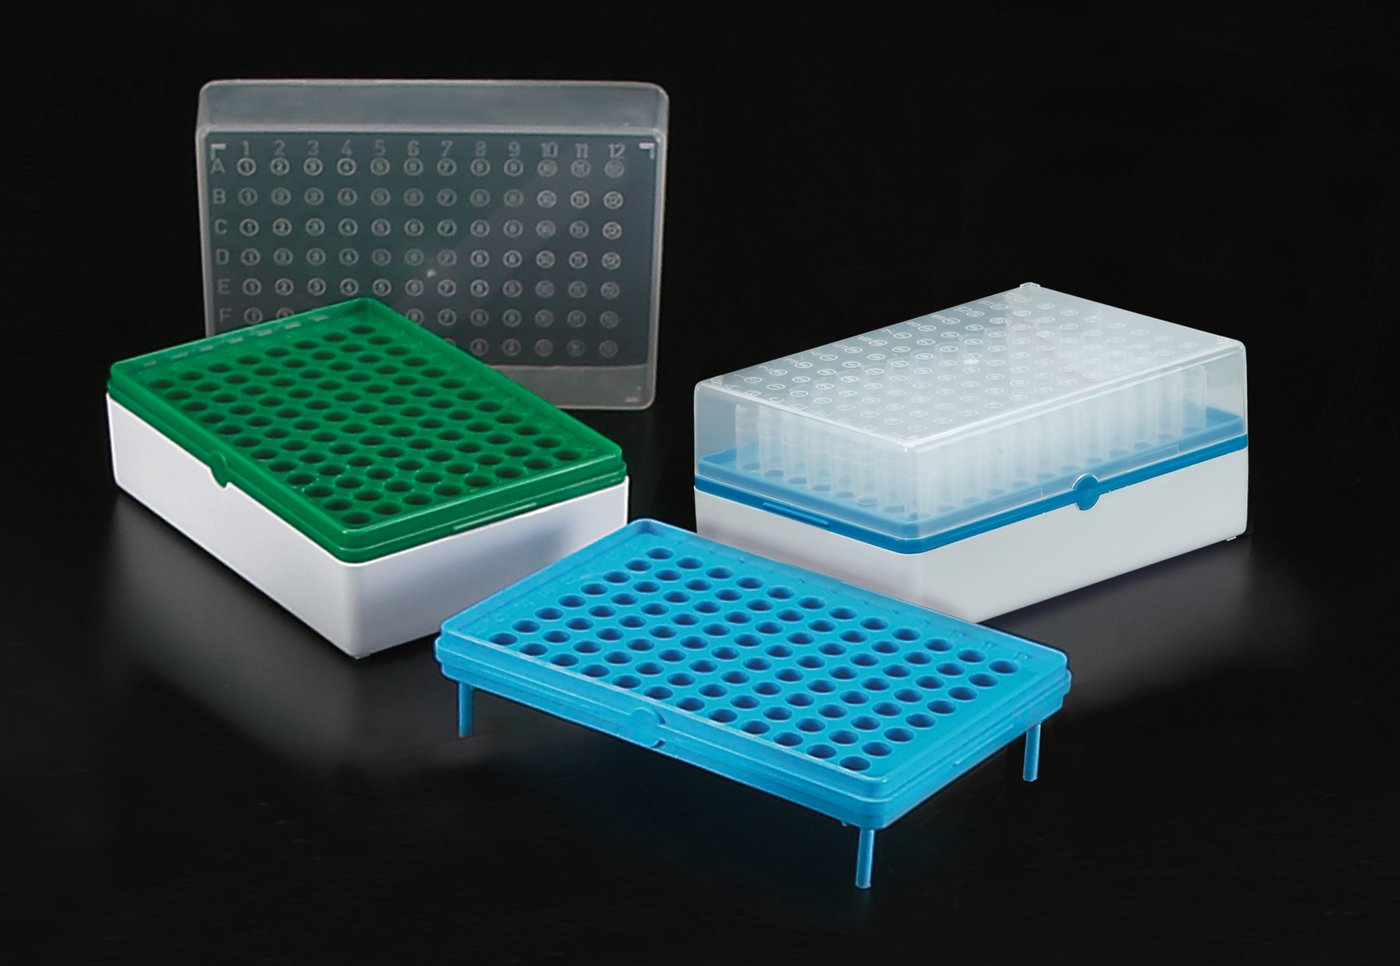 Simport BioTube T100-60G Polypropylene Grid Plate Only, Green (Case of 10)